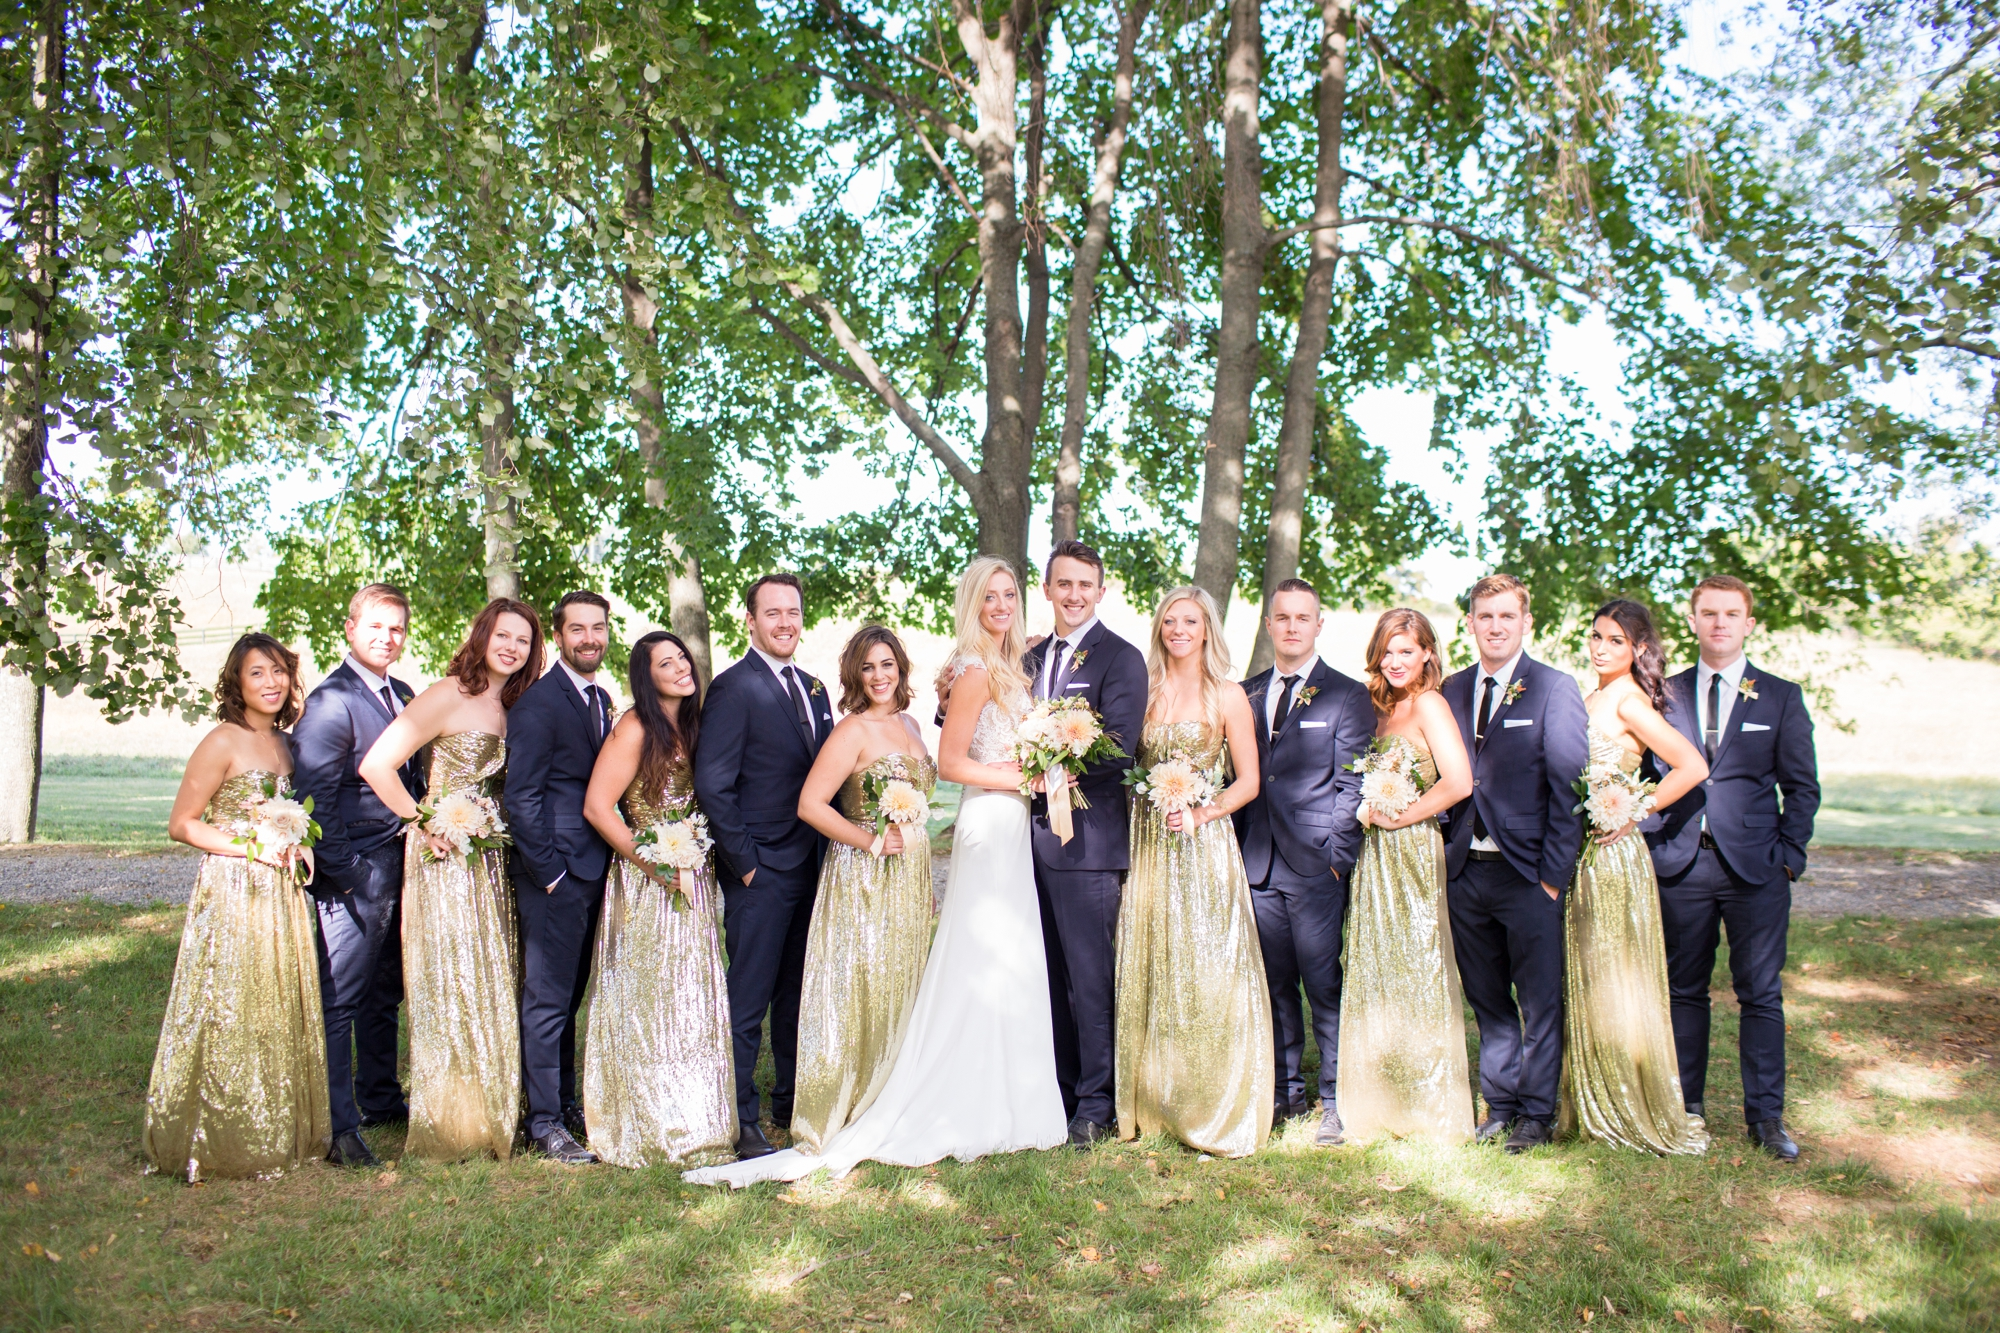 4-Olson Wedding Bridal Party-504_anna grace photography virginia wedding photographer whitehall estates.jpg